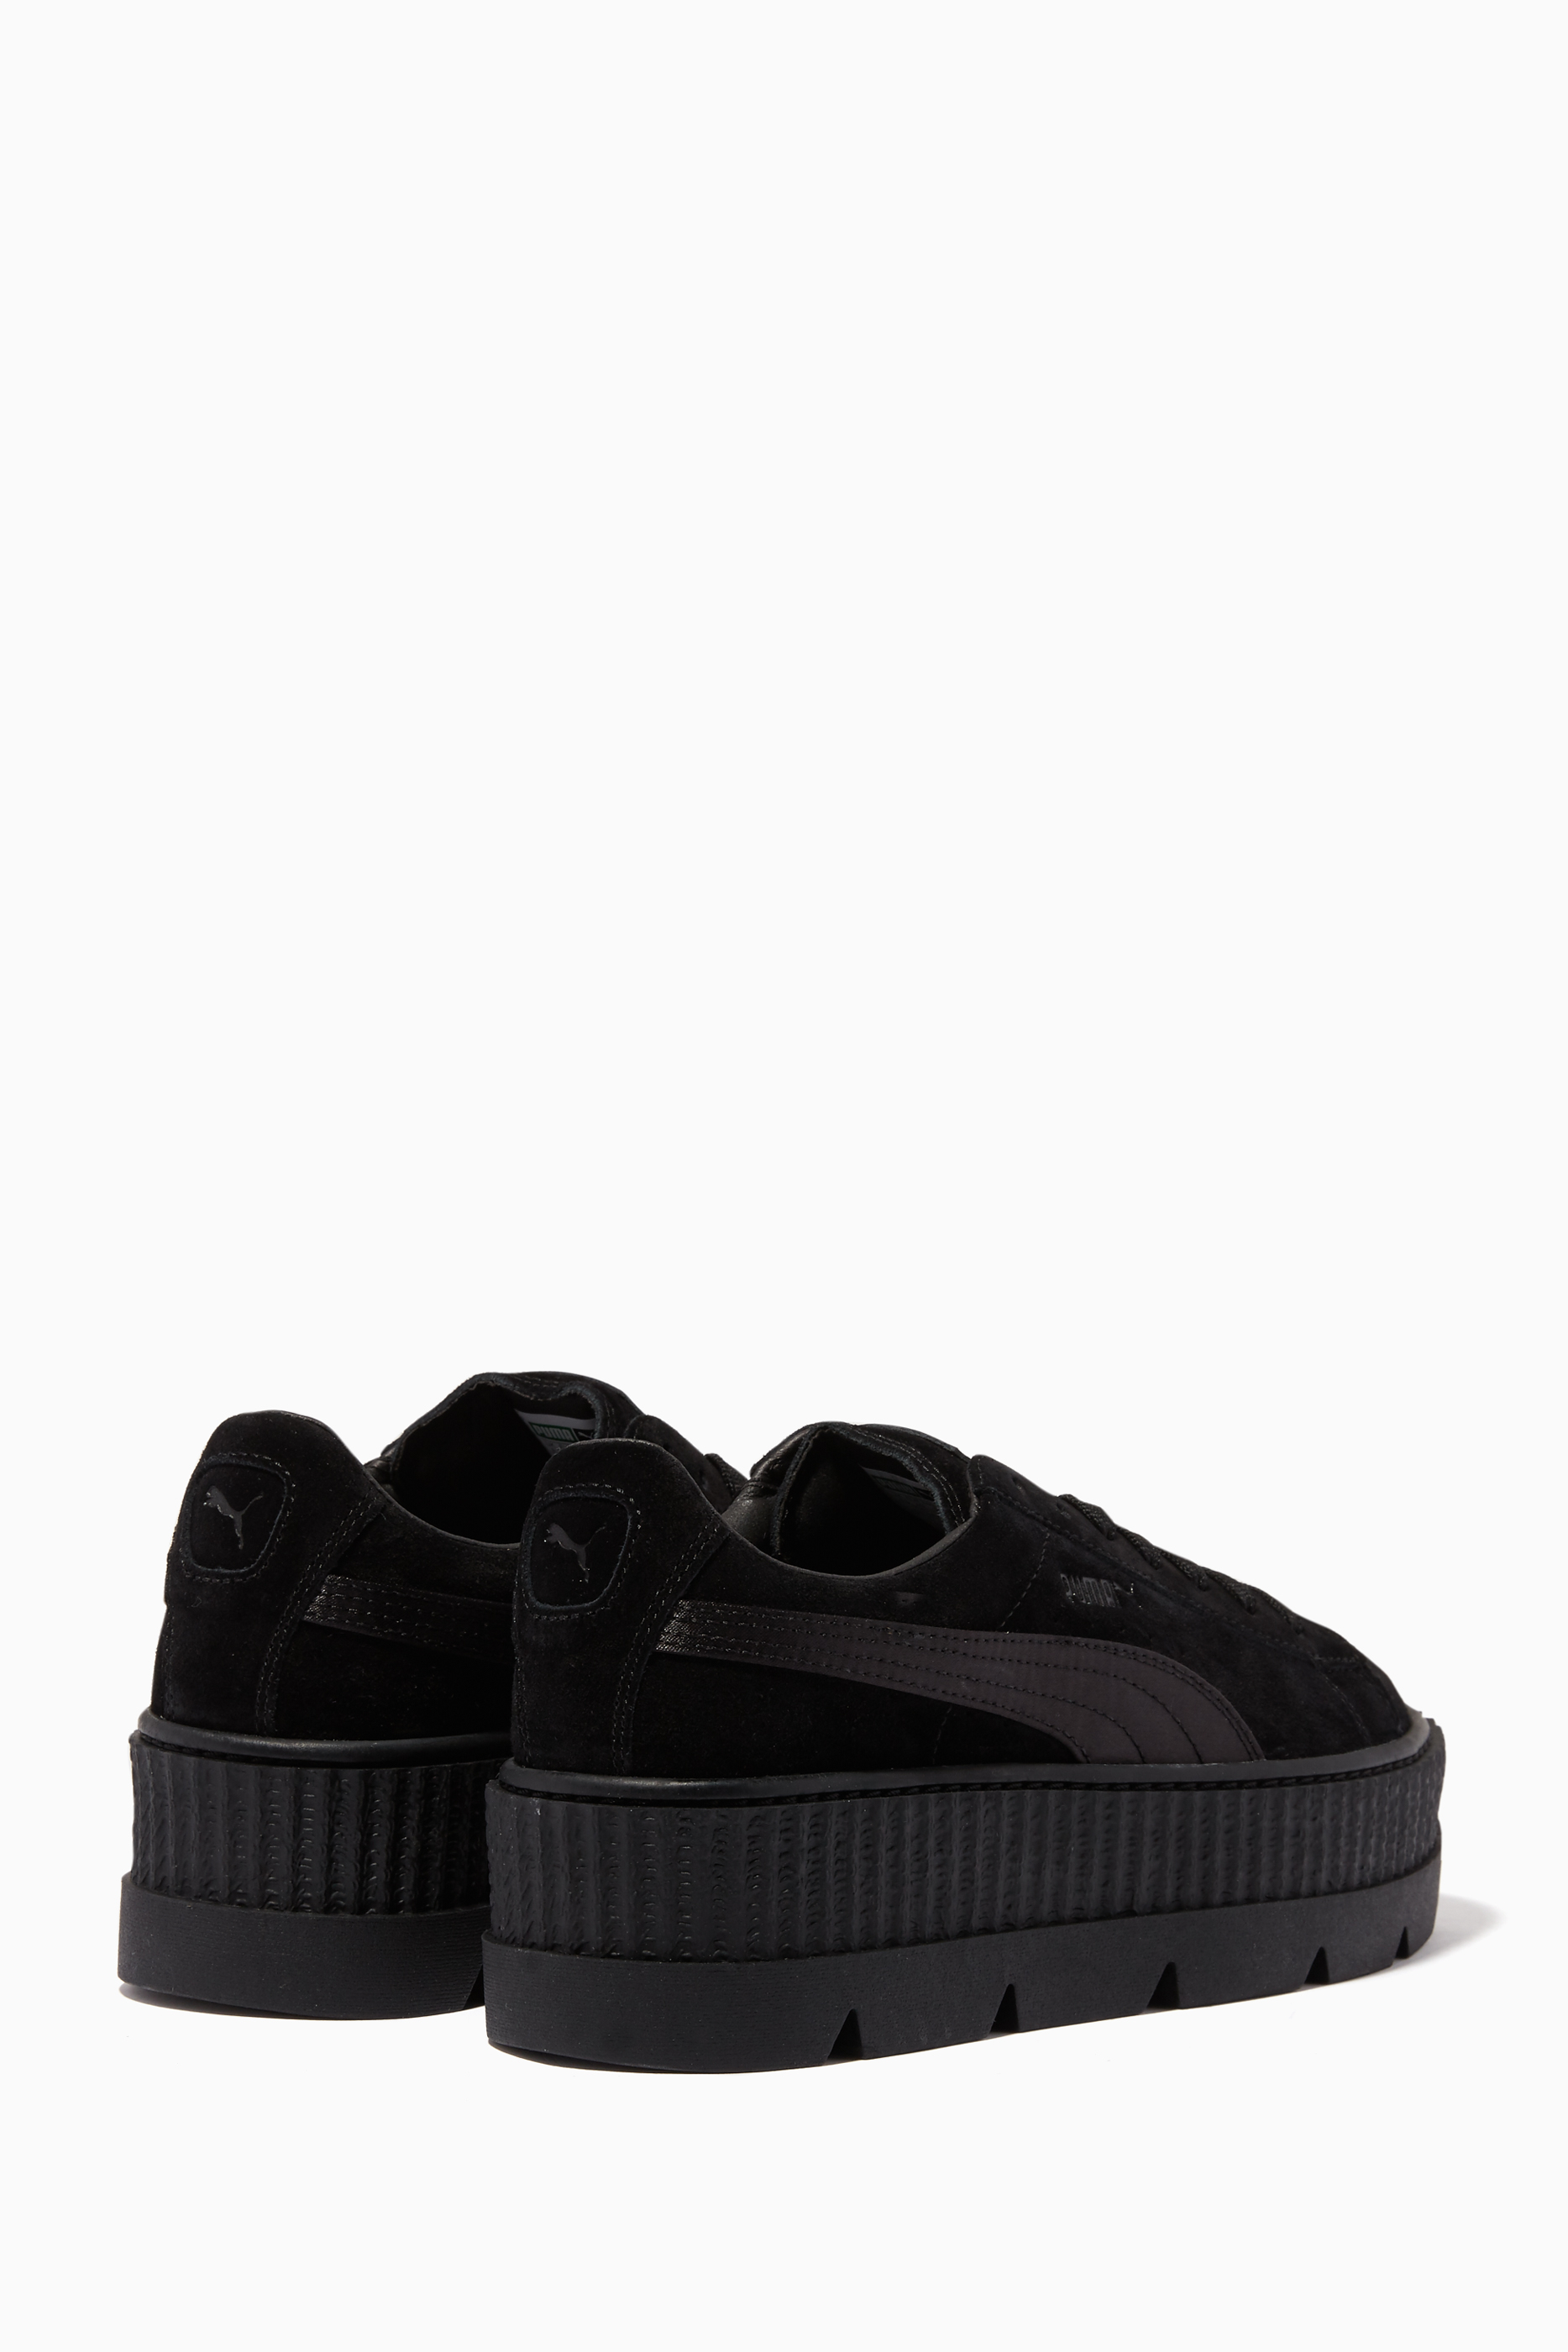 puma cleated creeper suede donna